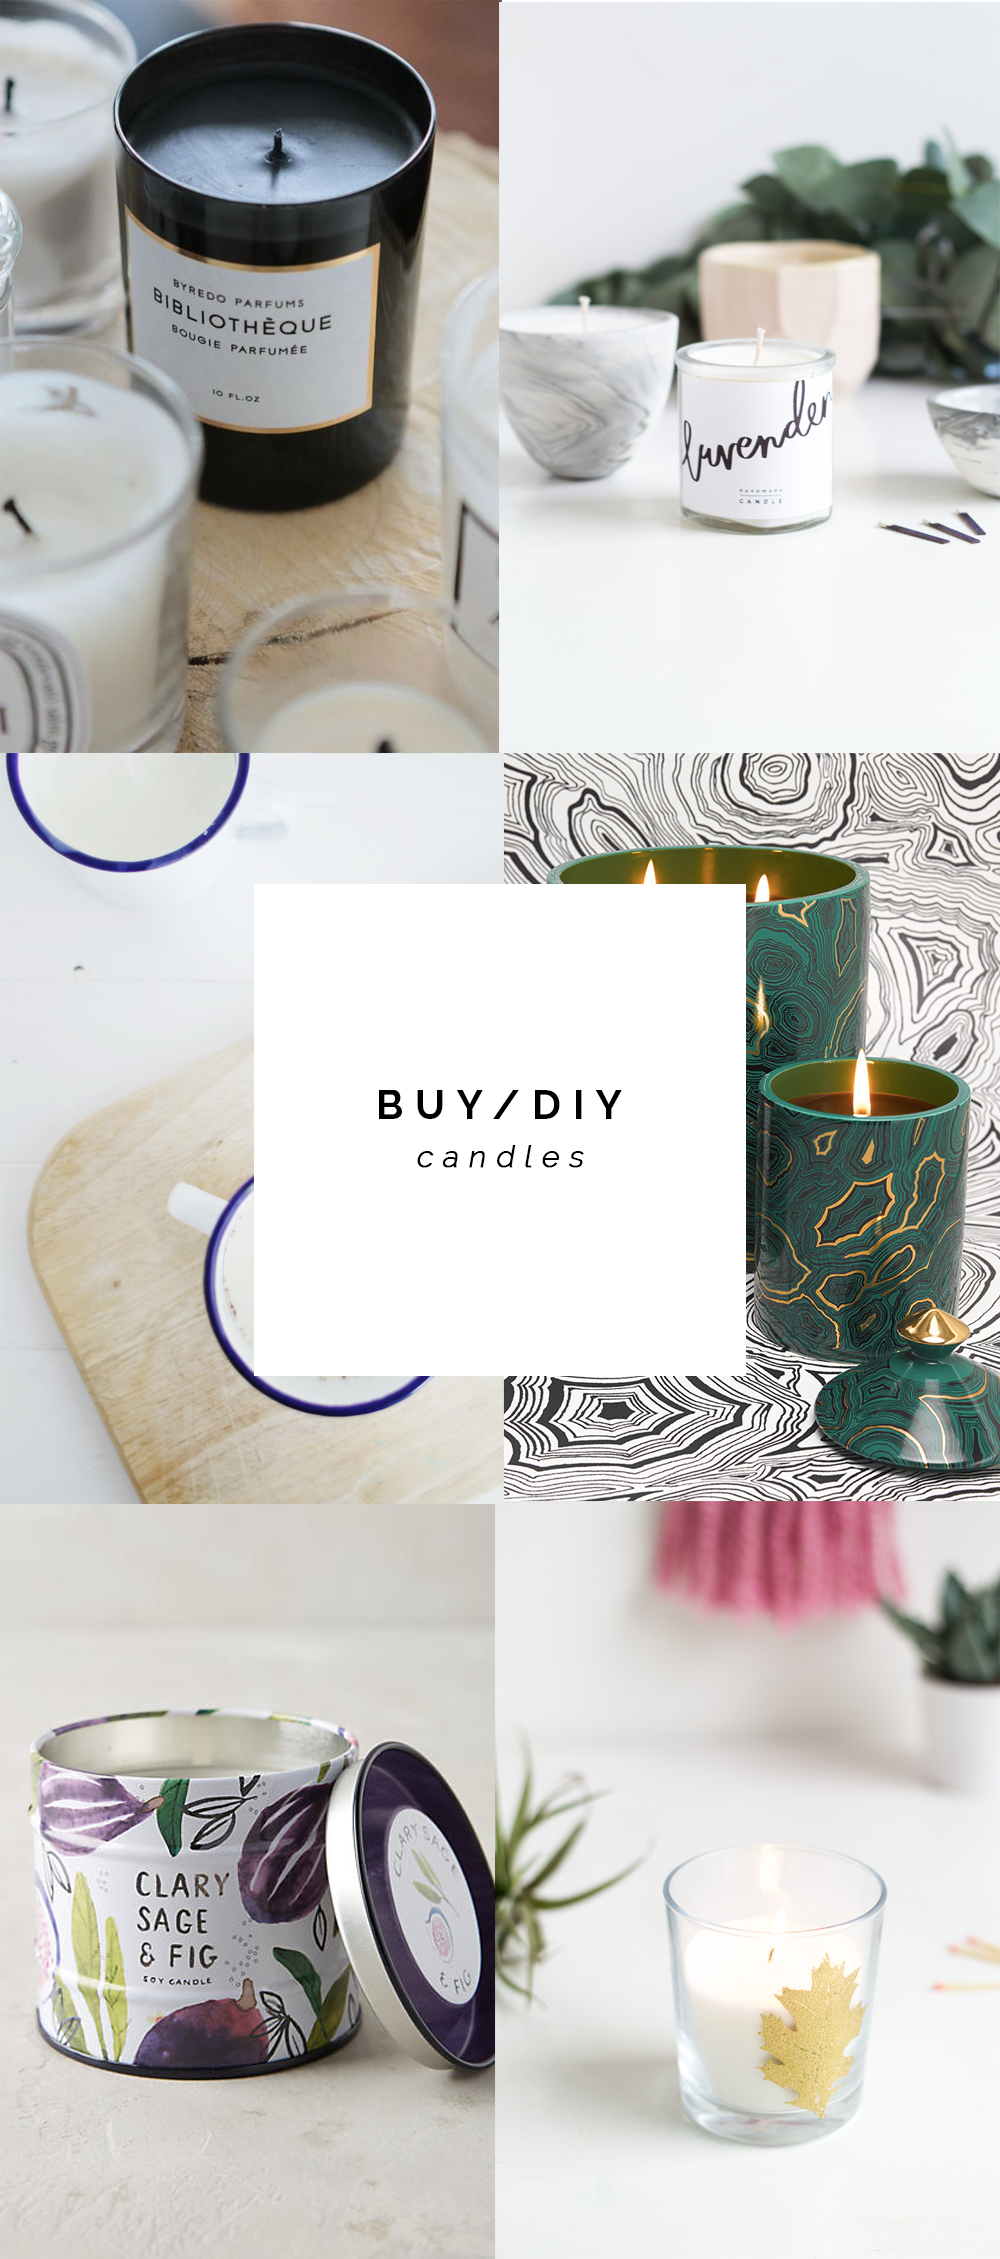 BUY/DIY Candles | @fallfordiy